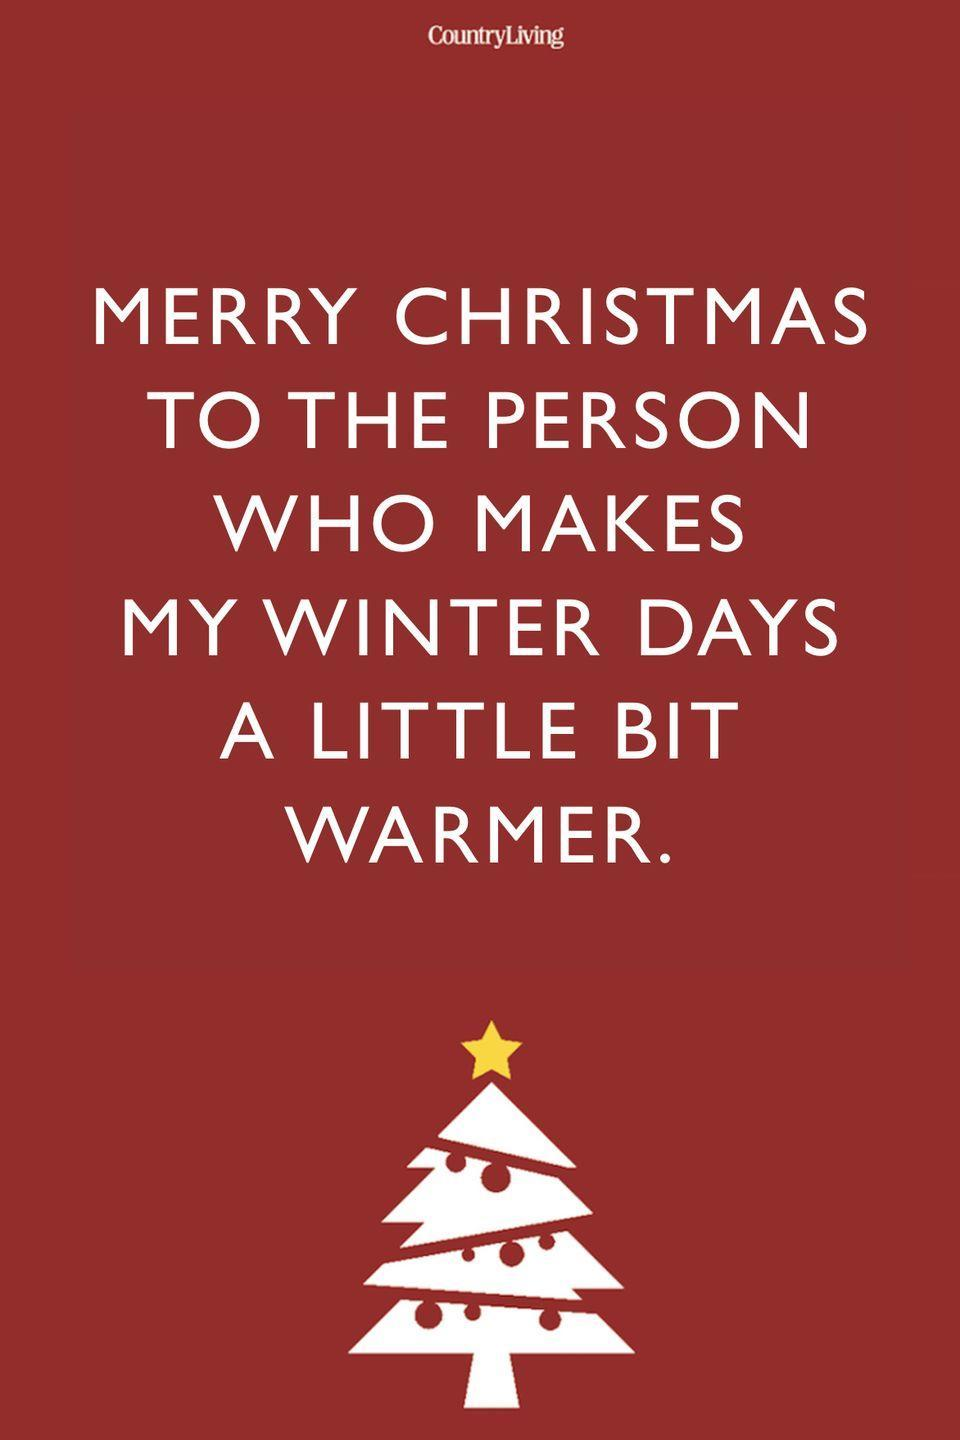 <p>Merry Christmas to the person who makes my winter days a little bit warmer.</p>